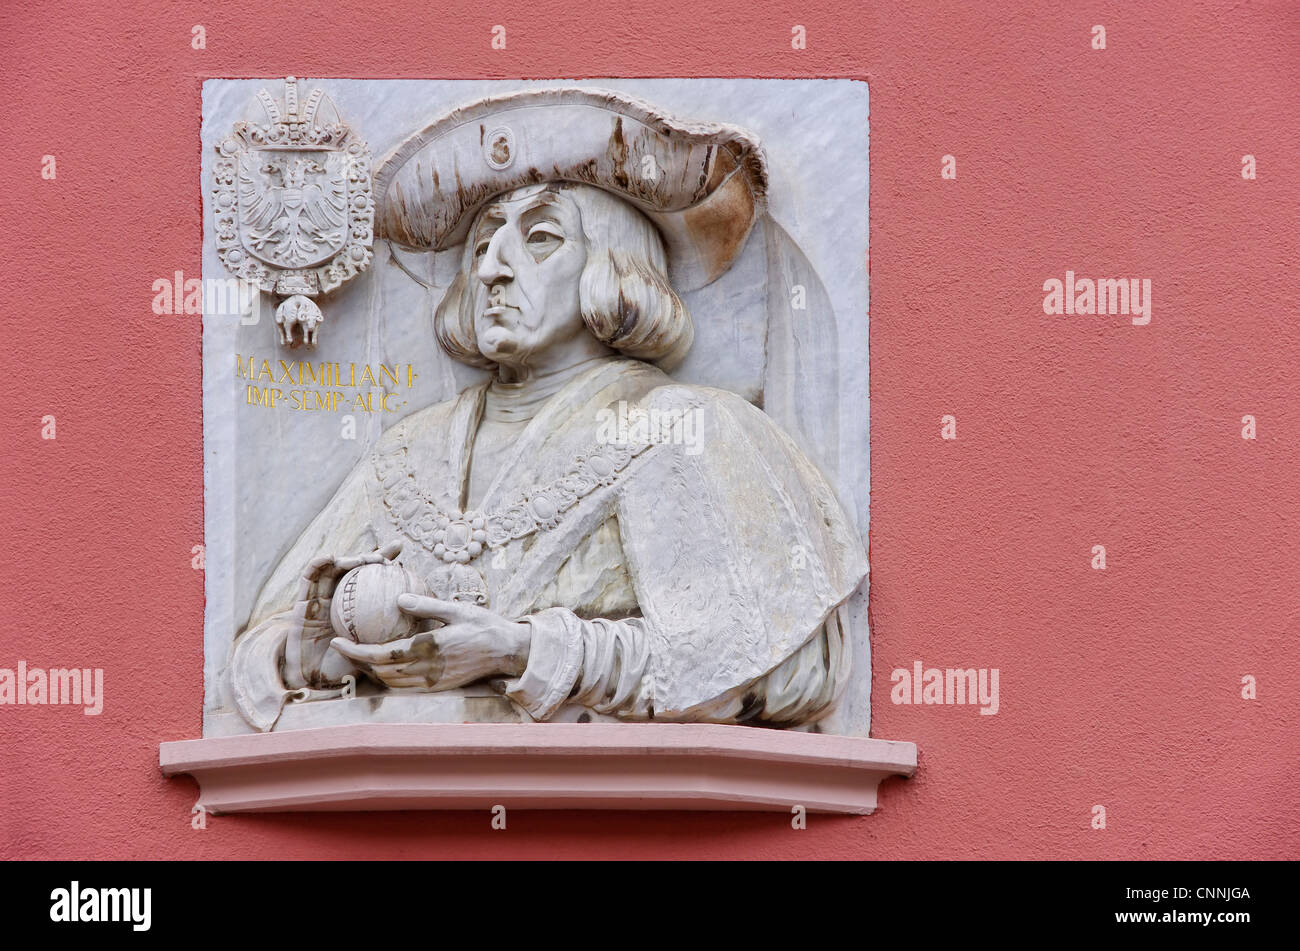 Marble portrait of Emperor Maximilian I. (1459 bis 1519) at the exterior facade of the building of Haus zum Walfisch - Stock Image